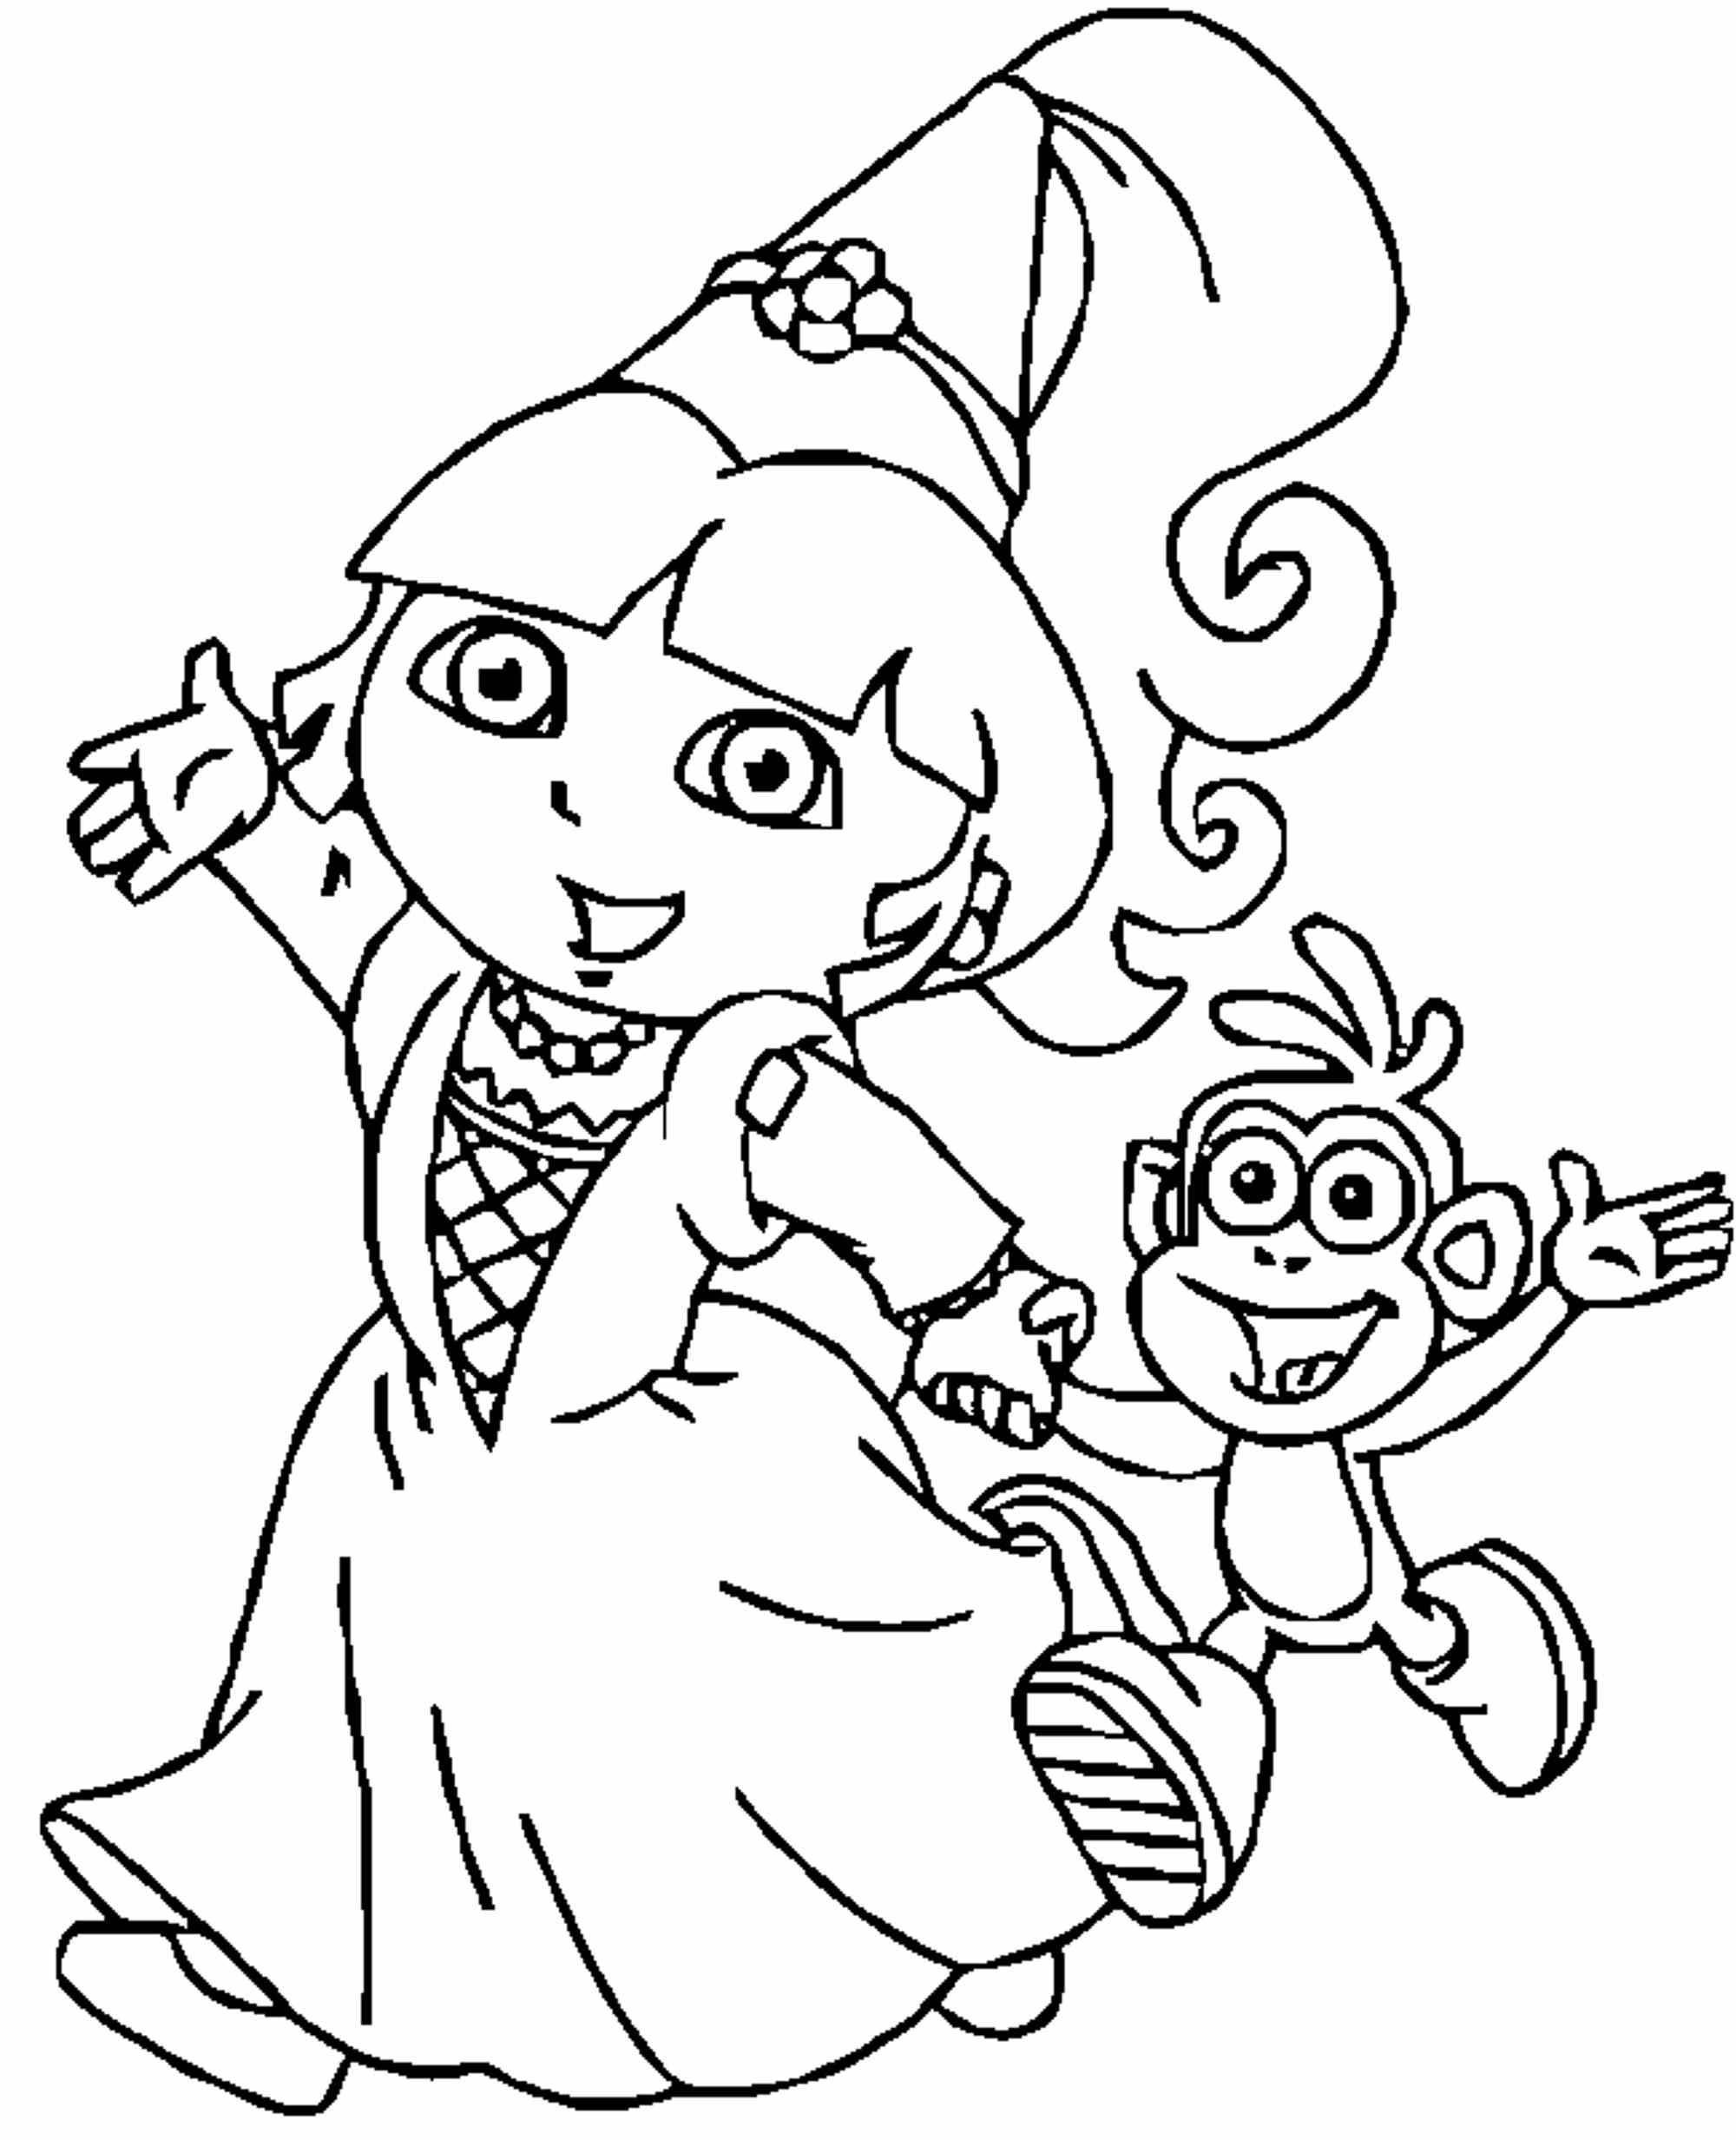 dora coloring page dora coloring pages backpack diego boots swiper print coloring page dora